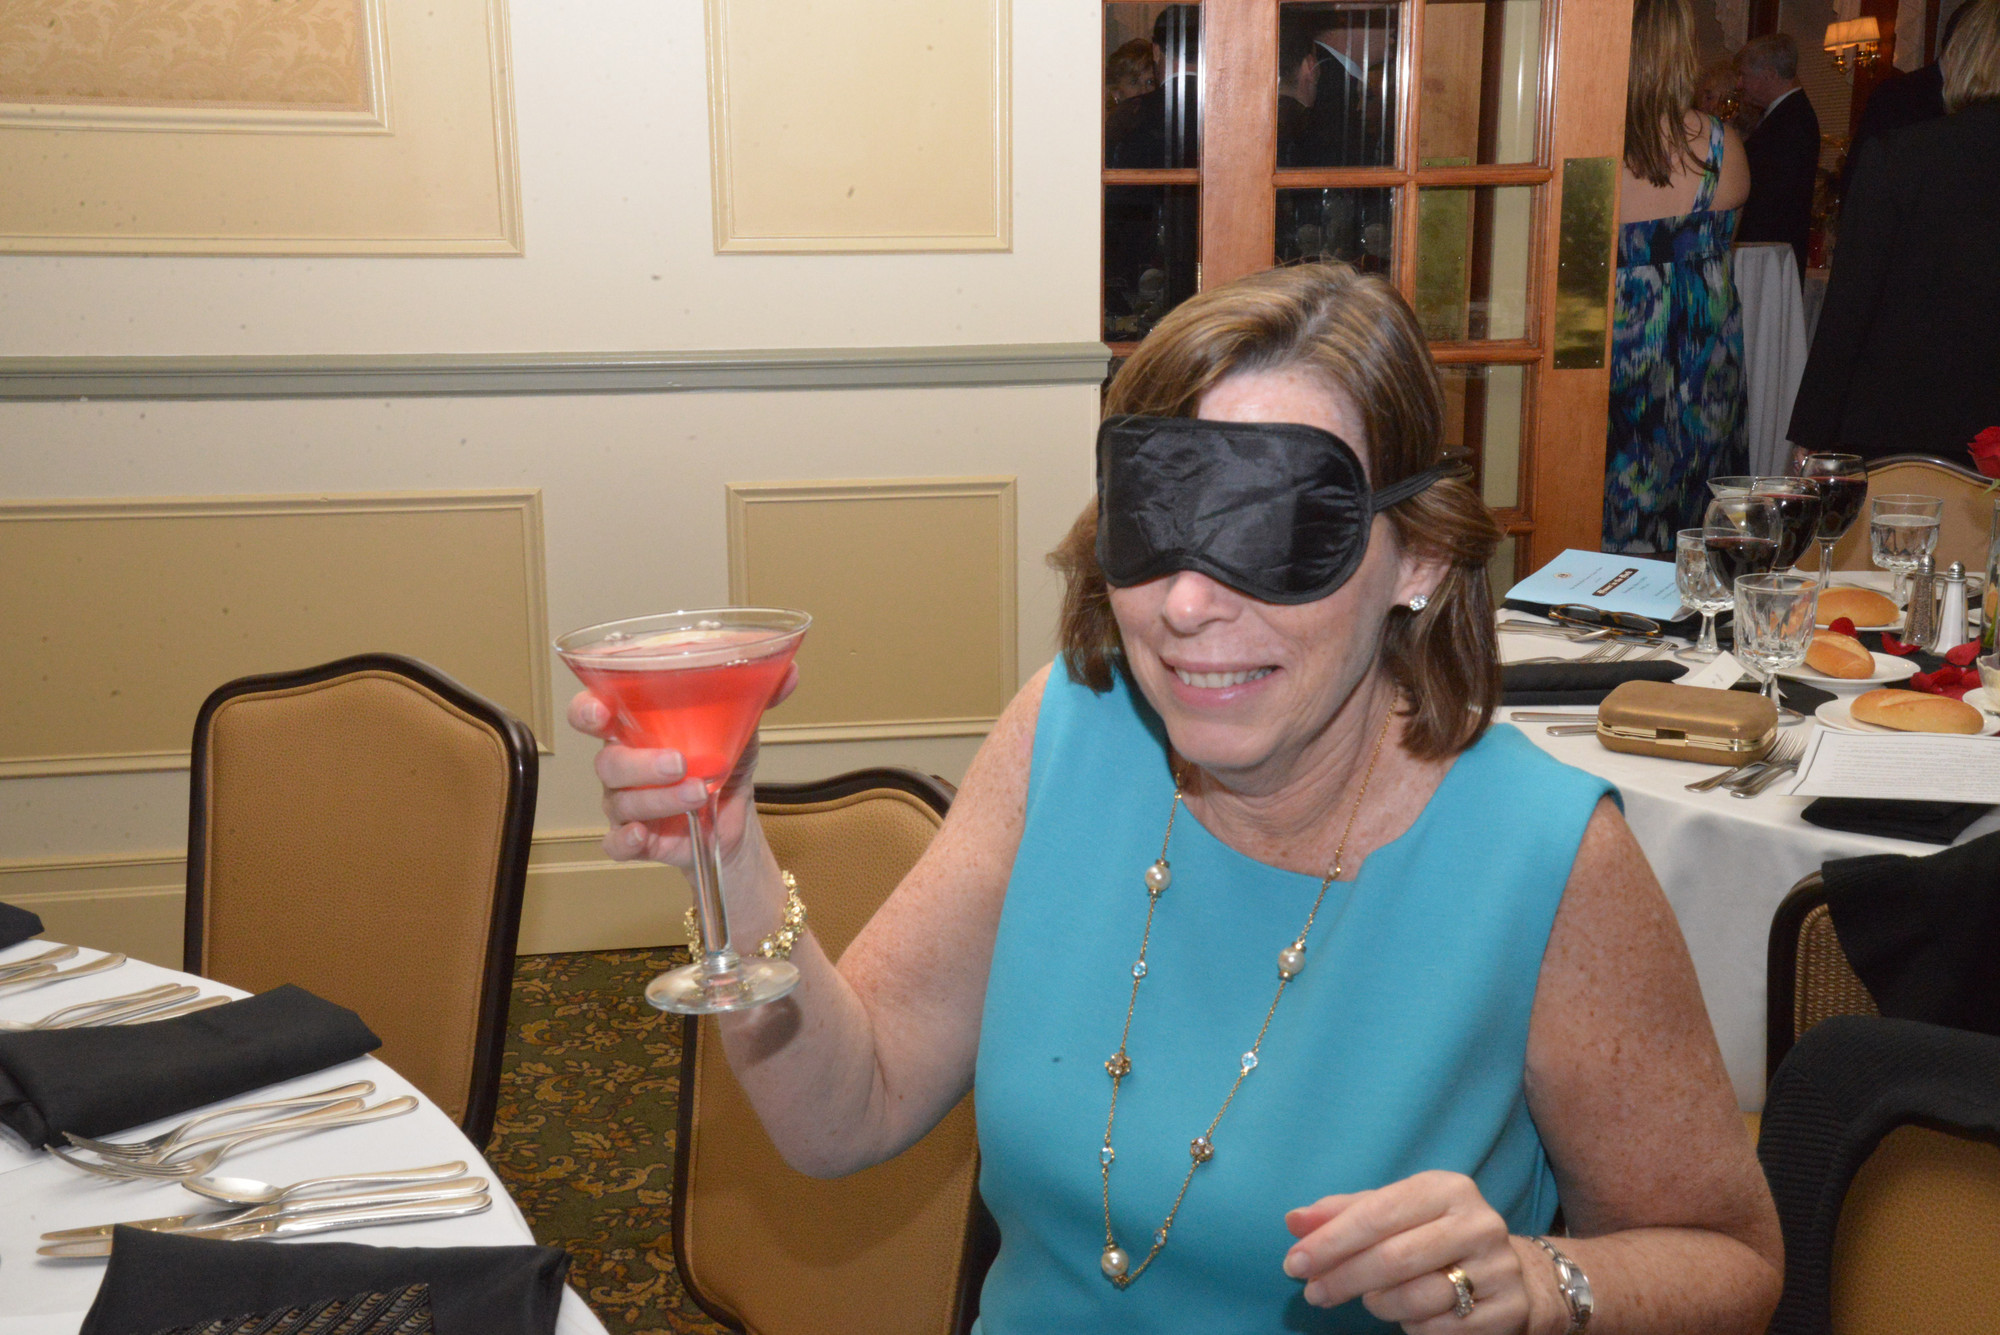 Eileen Alexanderson dined in the dark to learn about visual impairment.